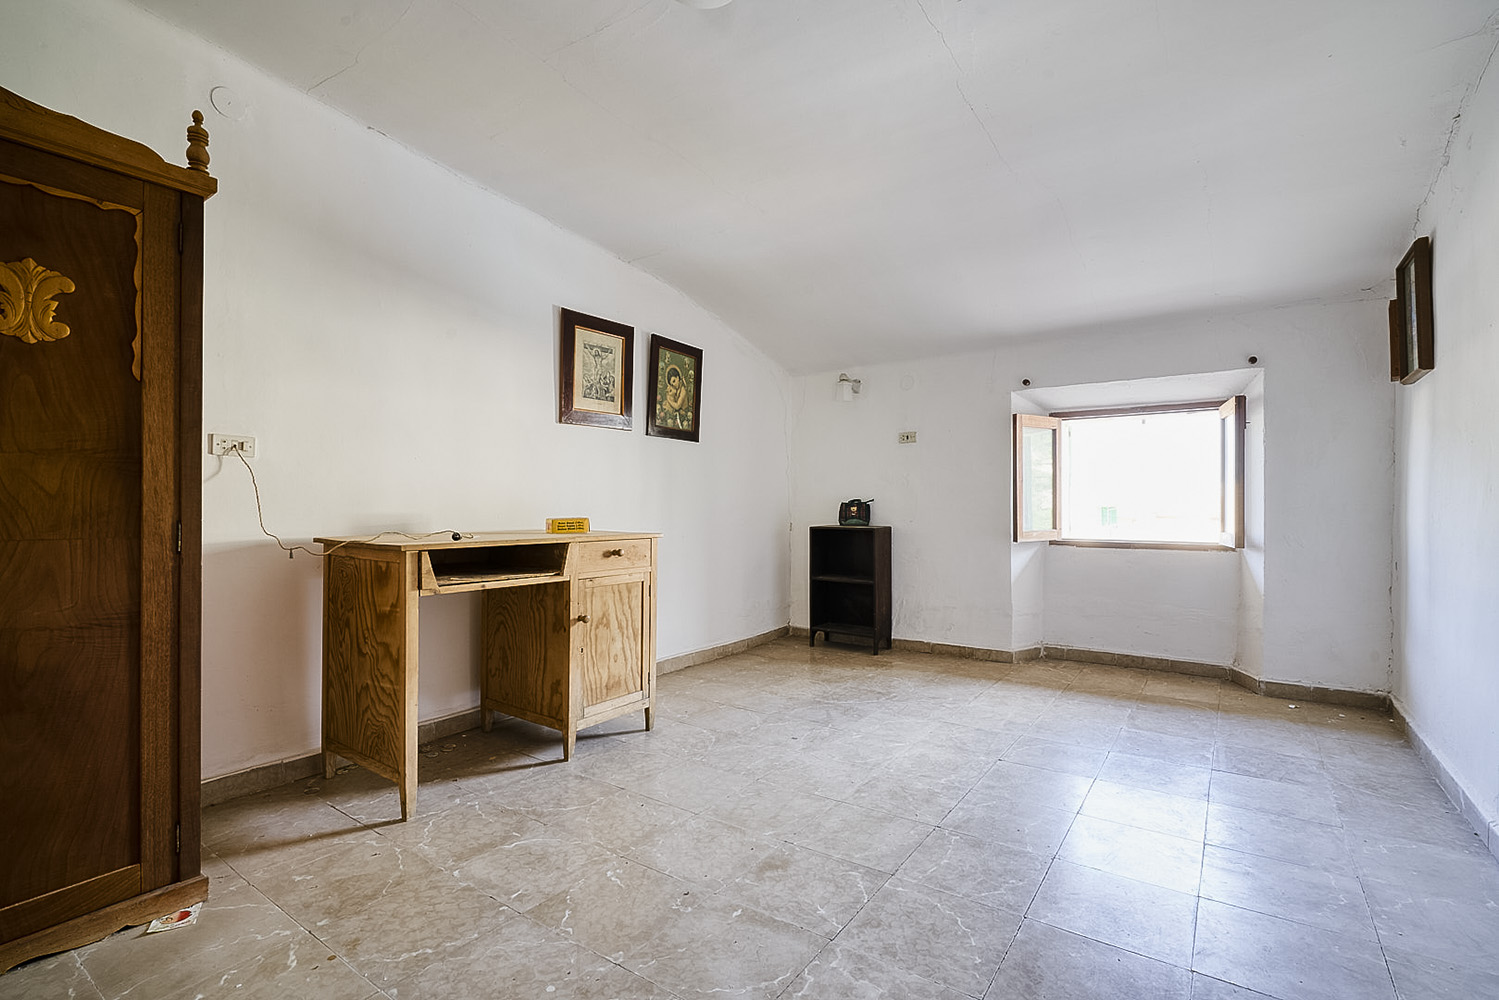 Images of Very nice townhouse in need of renovation for sale... real estate property